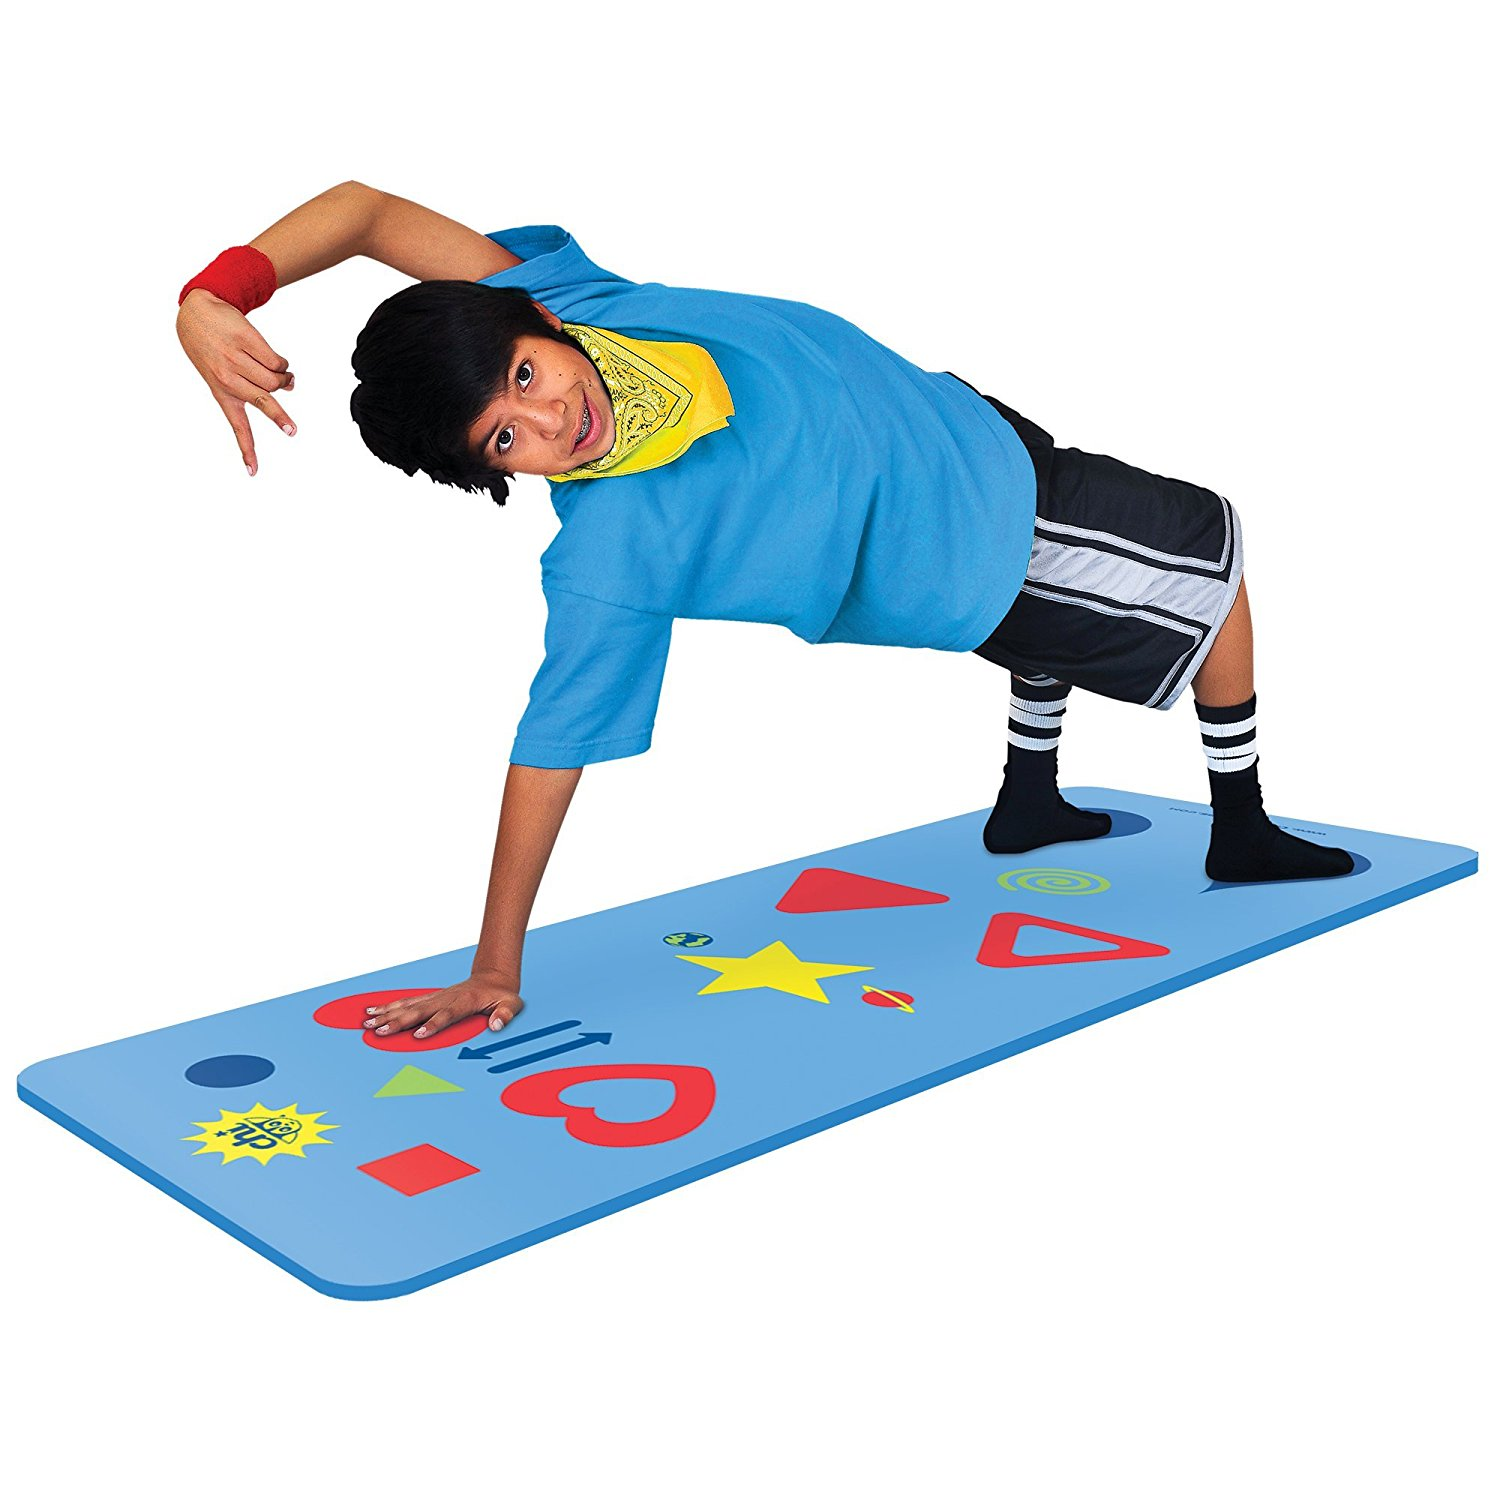 Review of the Best Kids Yoga Mat